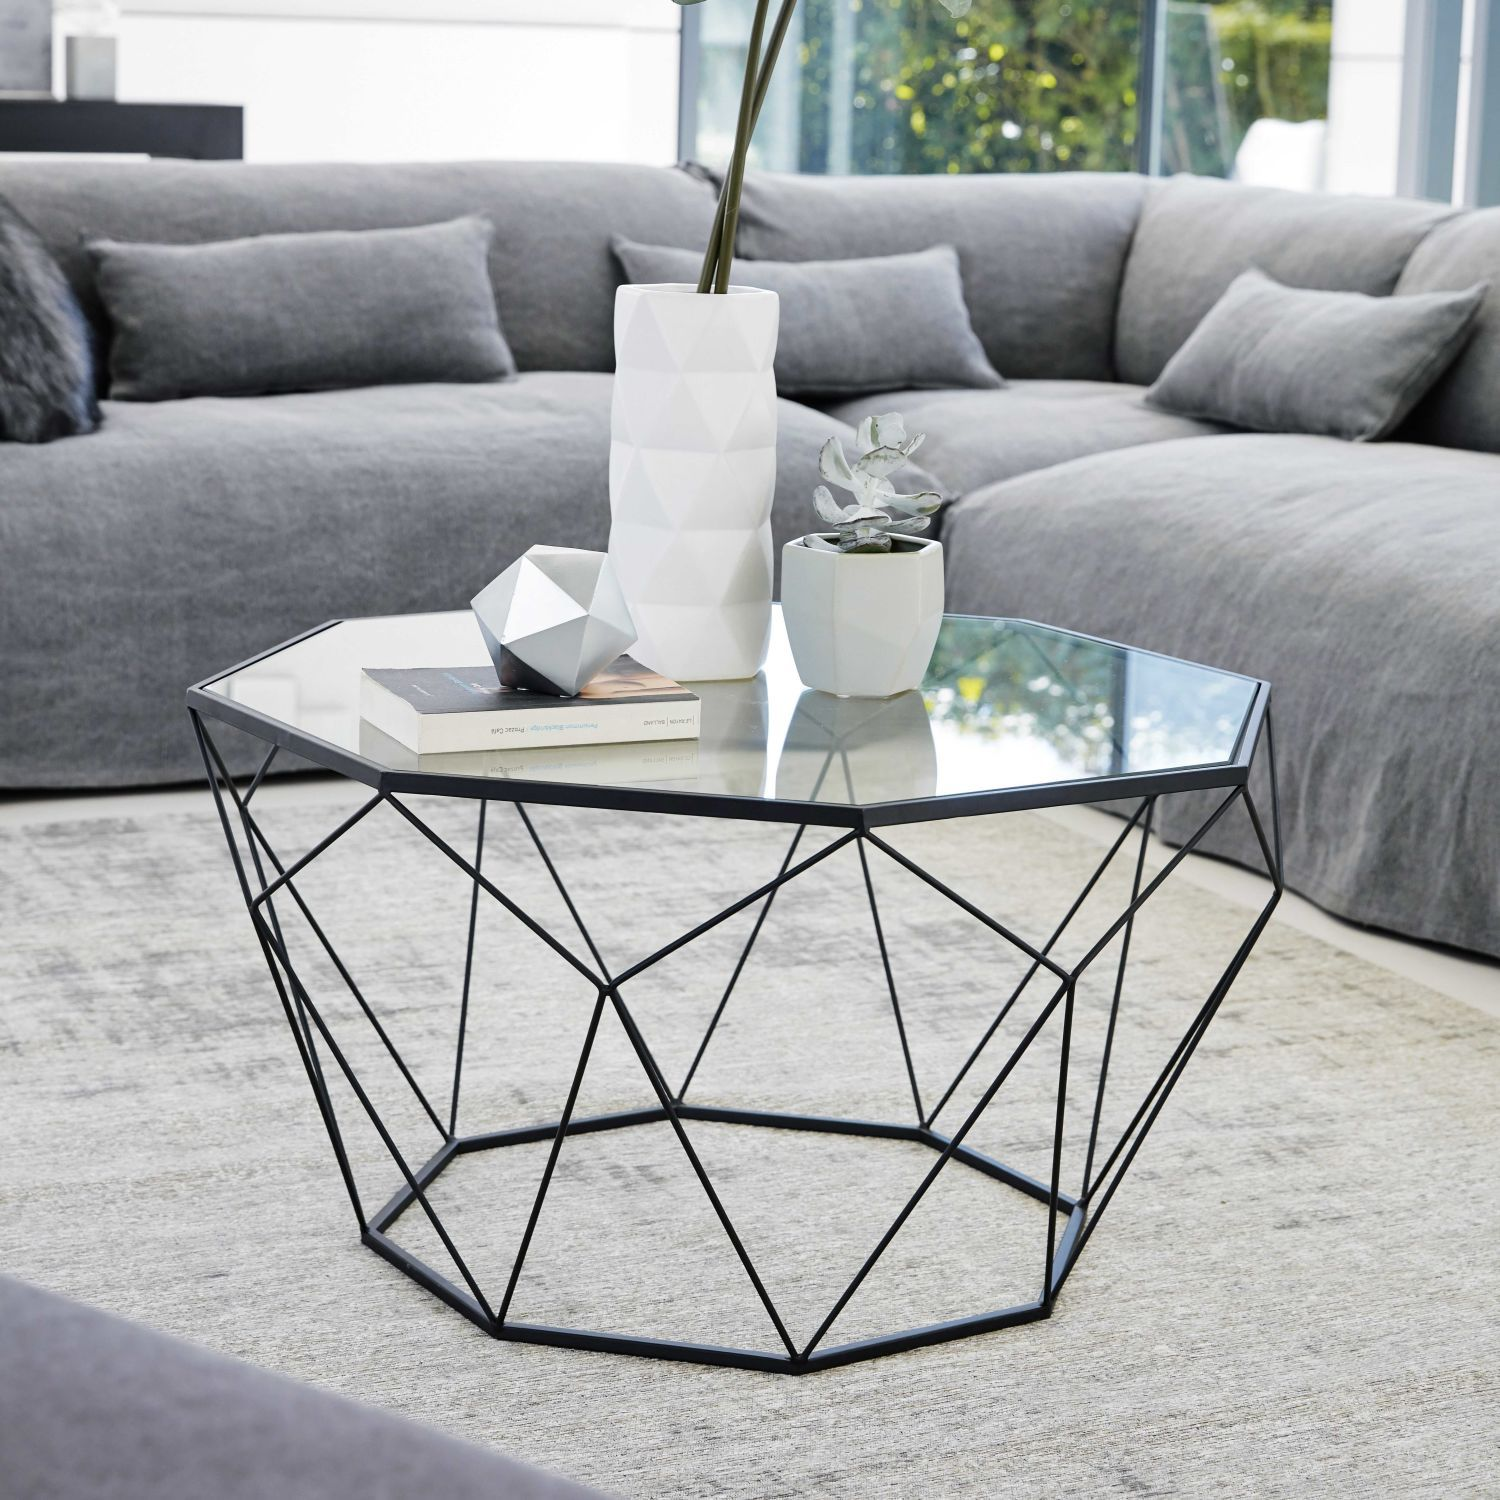 Black Metal And Tempered Glass Coffee Table Maisons Du Monde Coffee Table Coffee Table Accents Coffee Table Design [ 1500 x 1500 Pixel ]